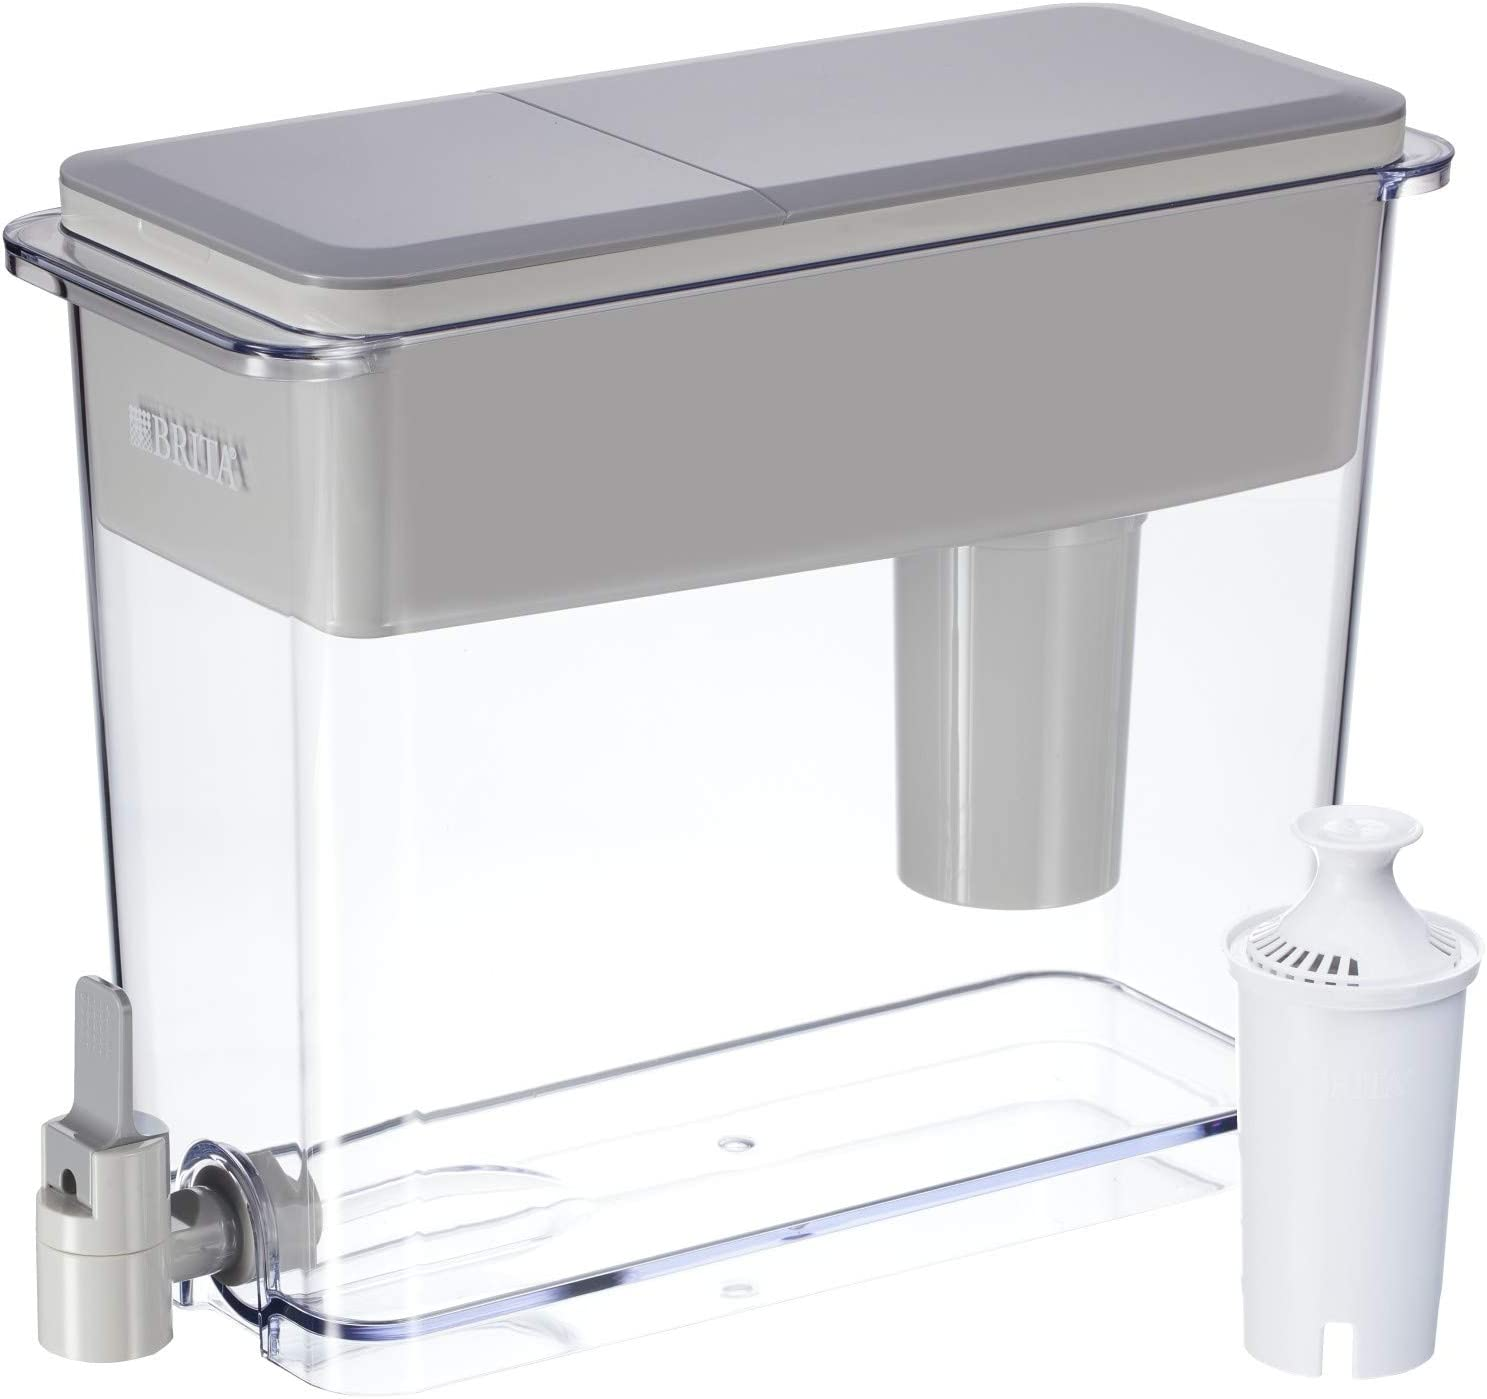 Brita 18 Cup UltraMax Water Dispenser with 1 Filter, BPA Free, Gray, Extra Large: Kitchen & Dining